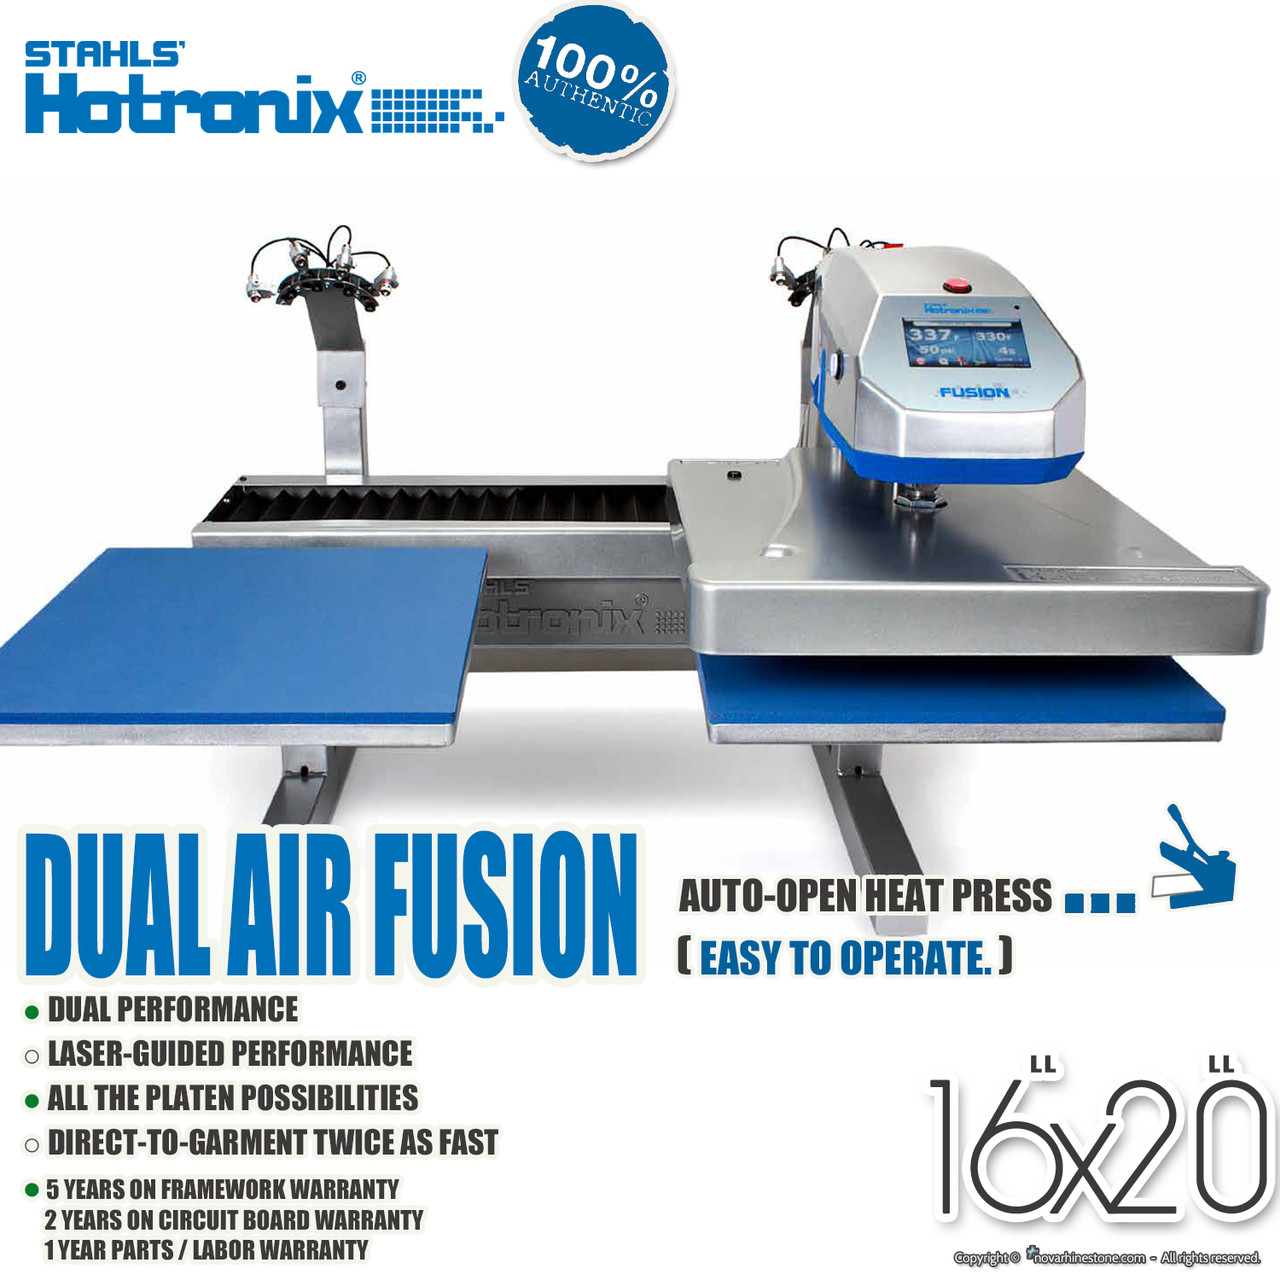 STAHLS' Hotronix® DUAL AIR FUSION™ Heat Press with LASER 16